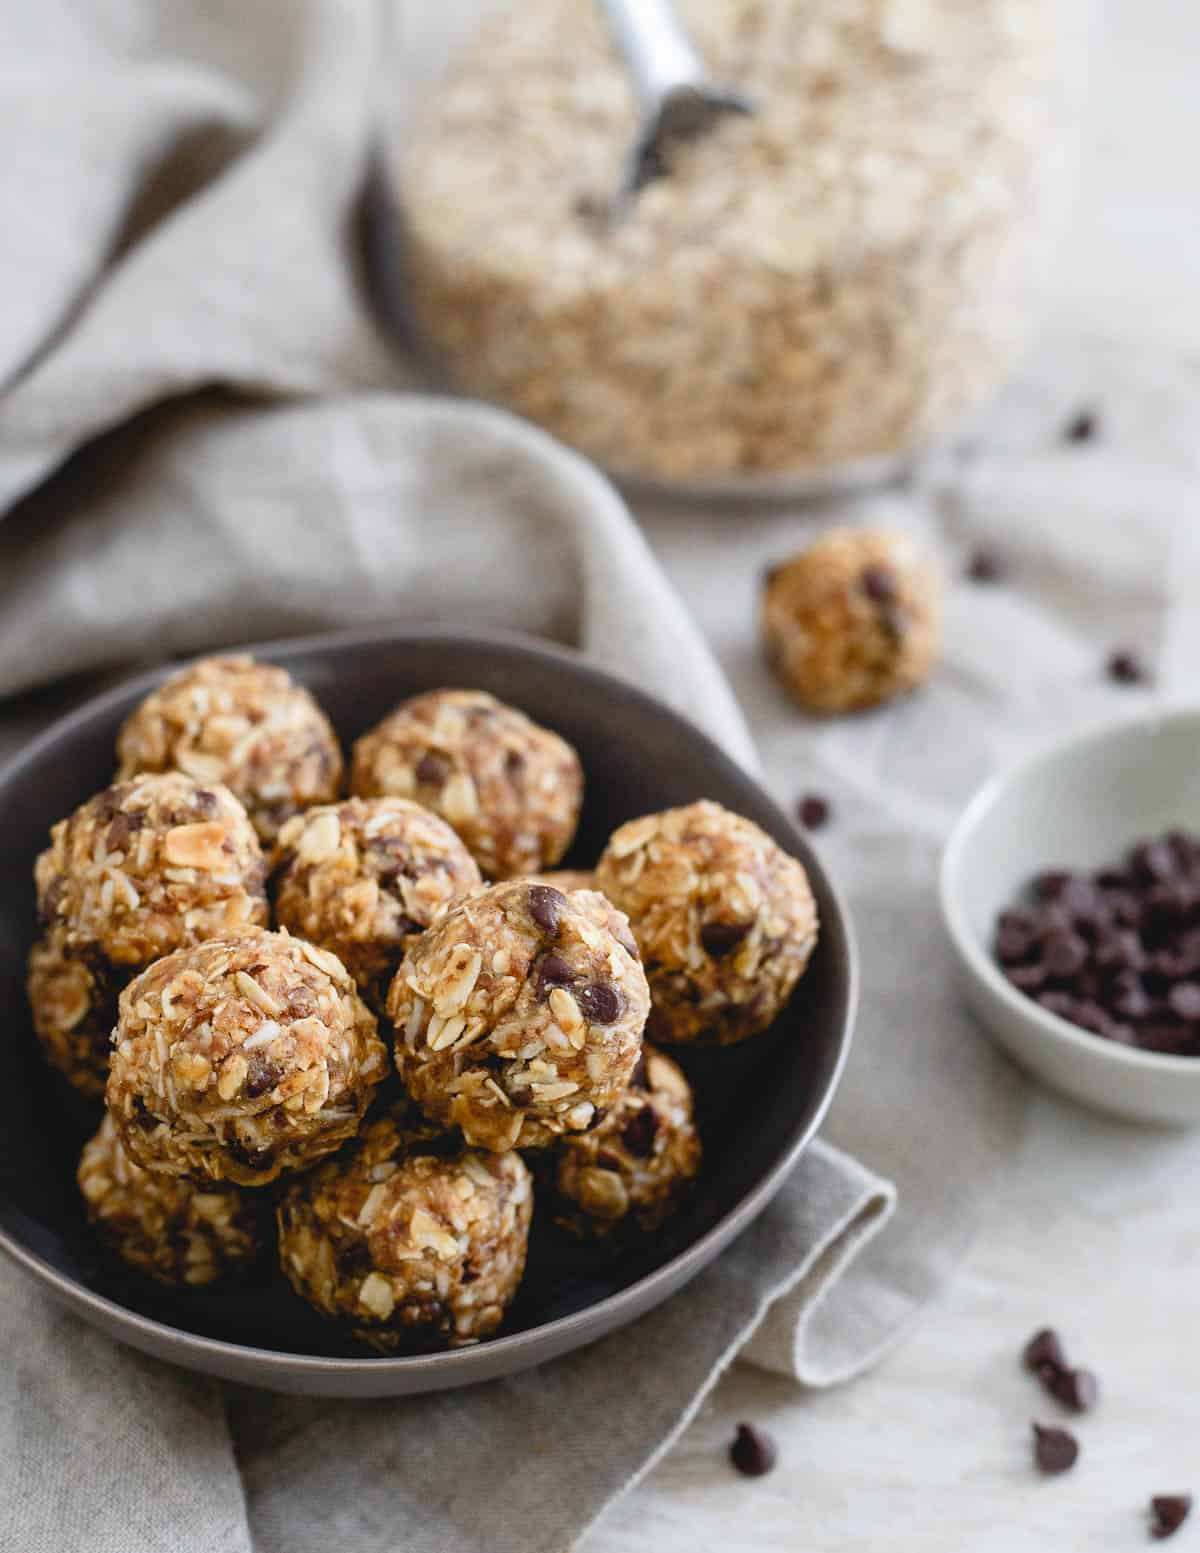 These no bake peanut butter chocolate chip balls taste just like a Reese's peanut butter cup but made with all real food. They're the perfect tasty snack when you're craving a sweet treat!